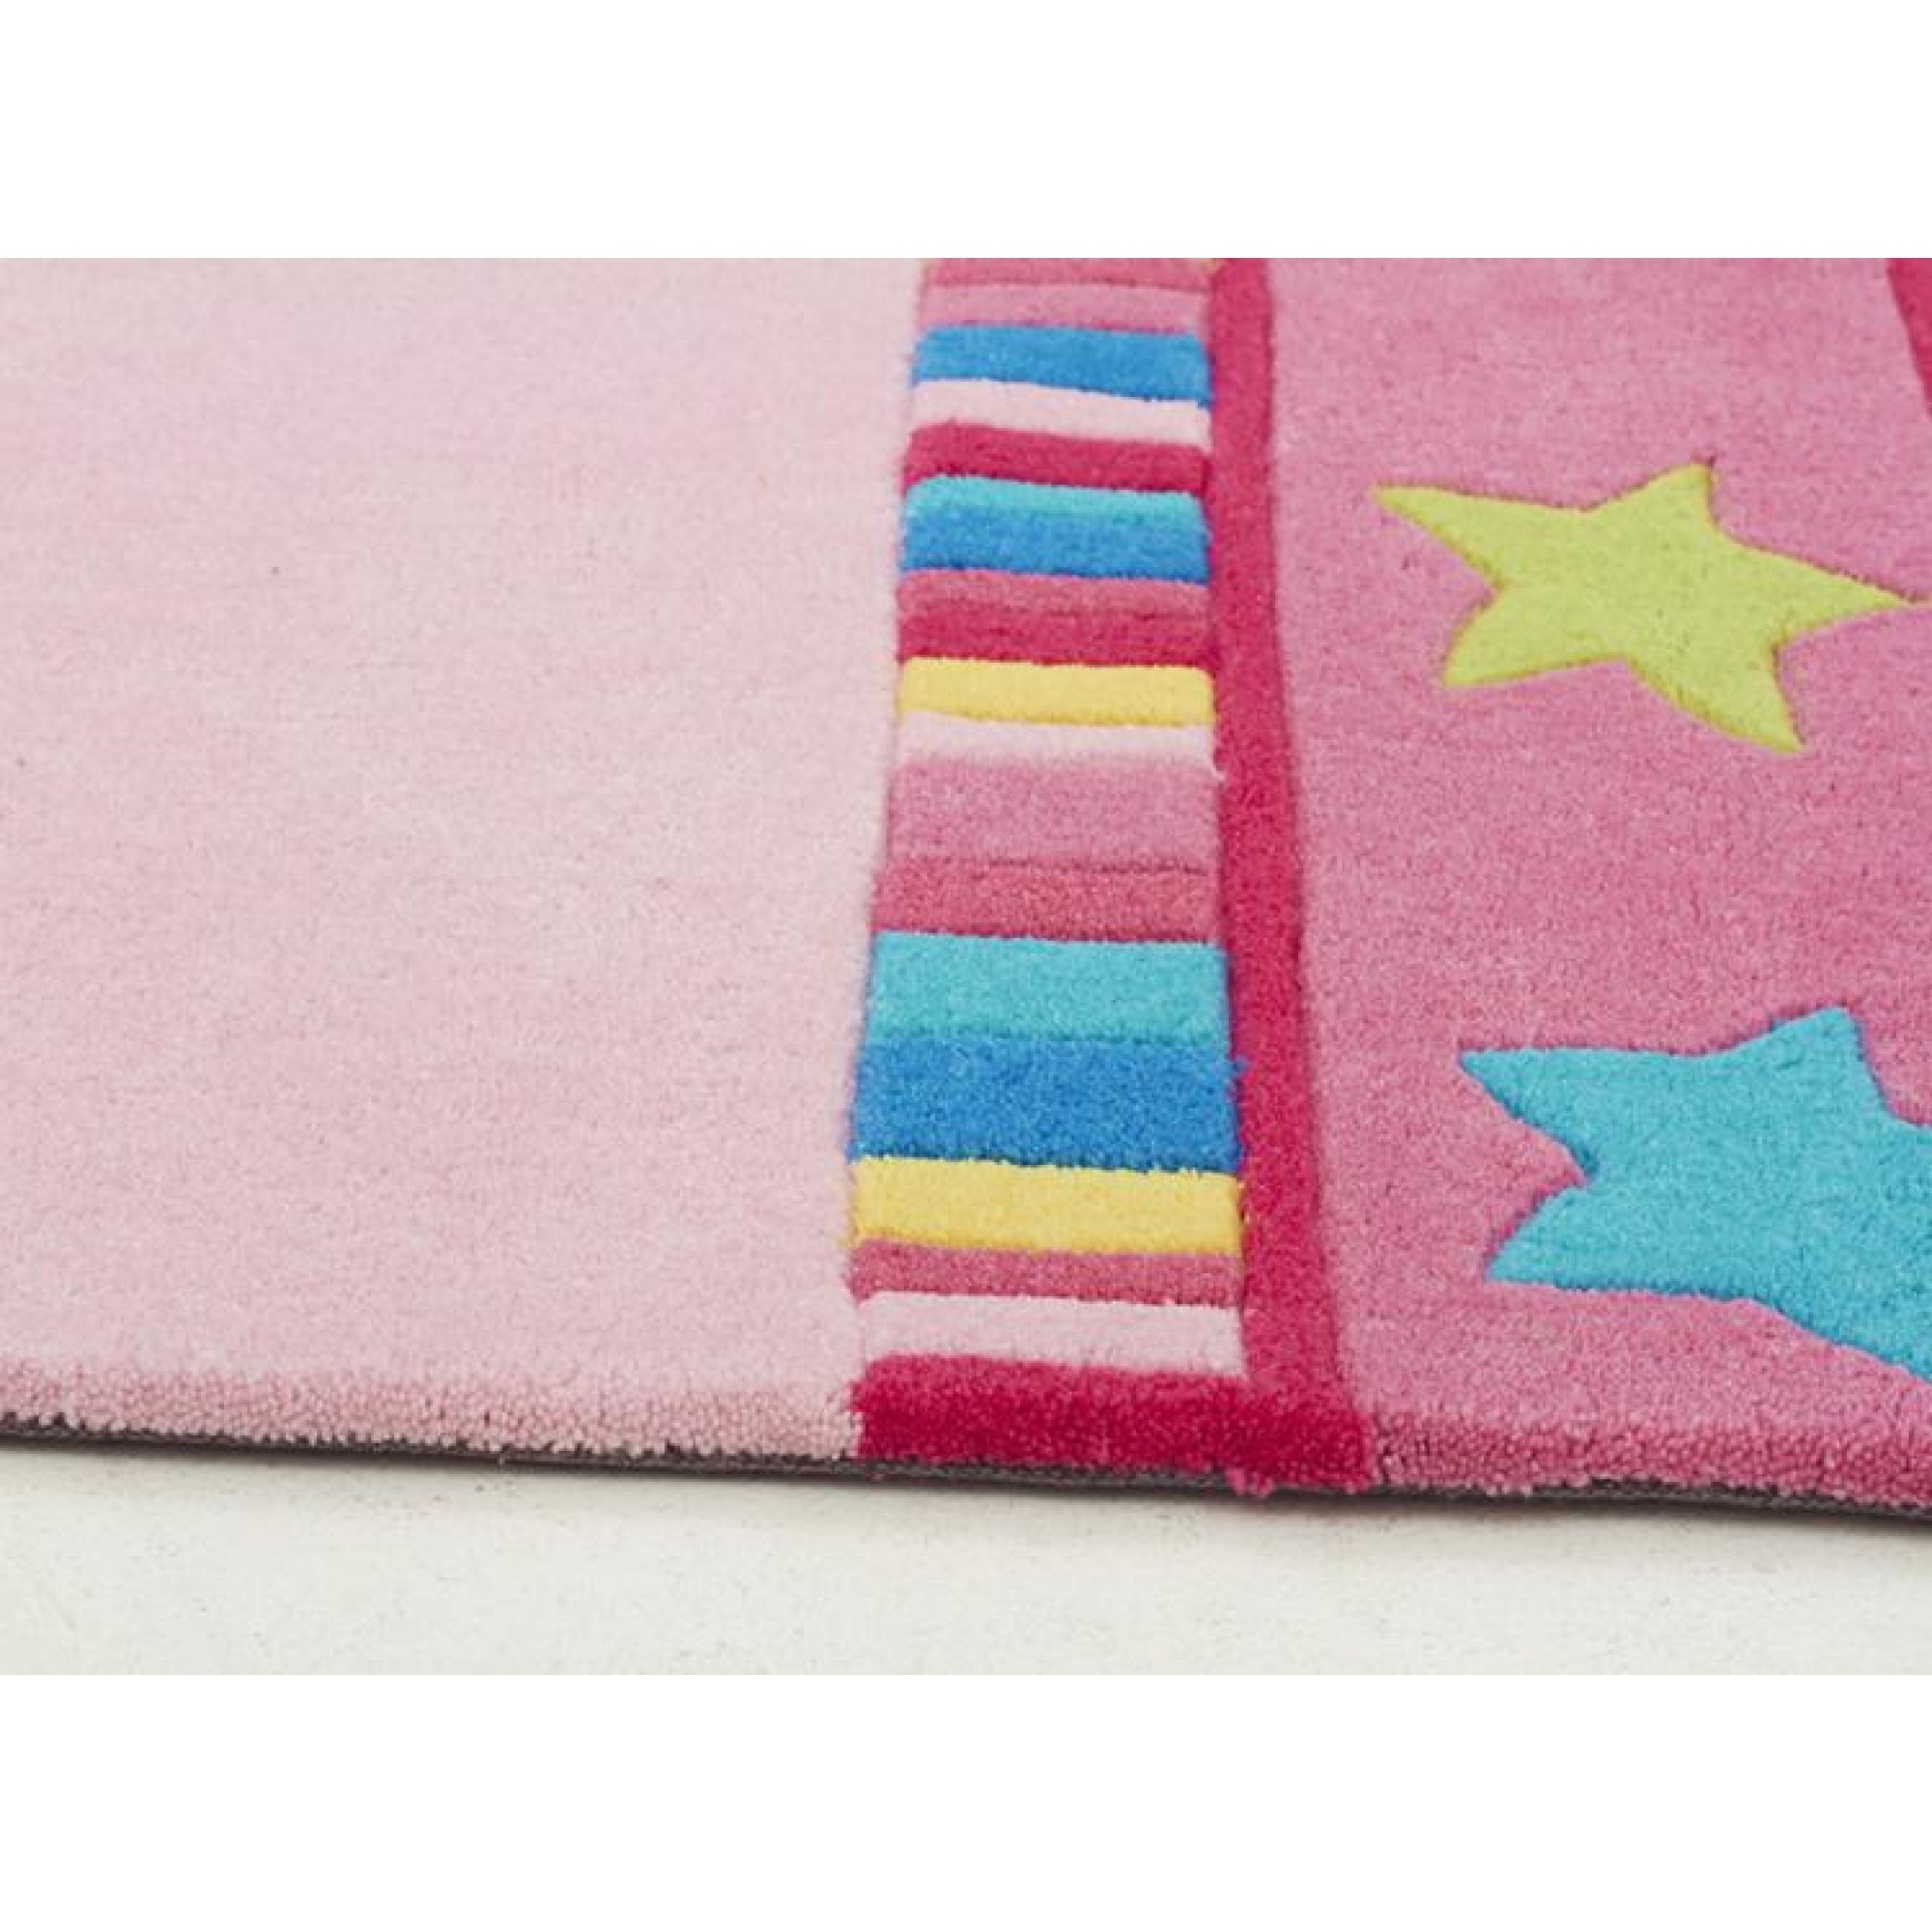 Pretty Girls Crown Rug Pink Kids Floor Rugs Free Shipping Intended For Girls Floor Rugs (Image 9 of 15)